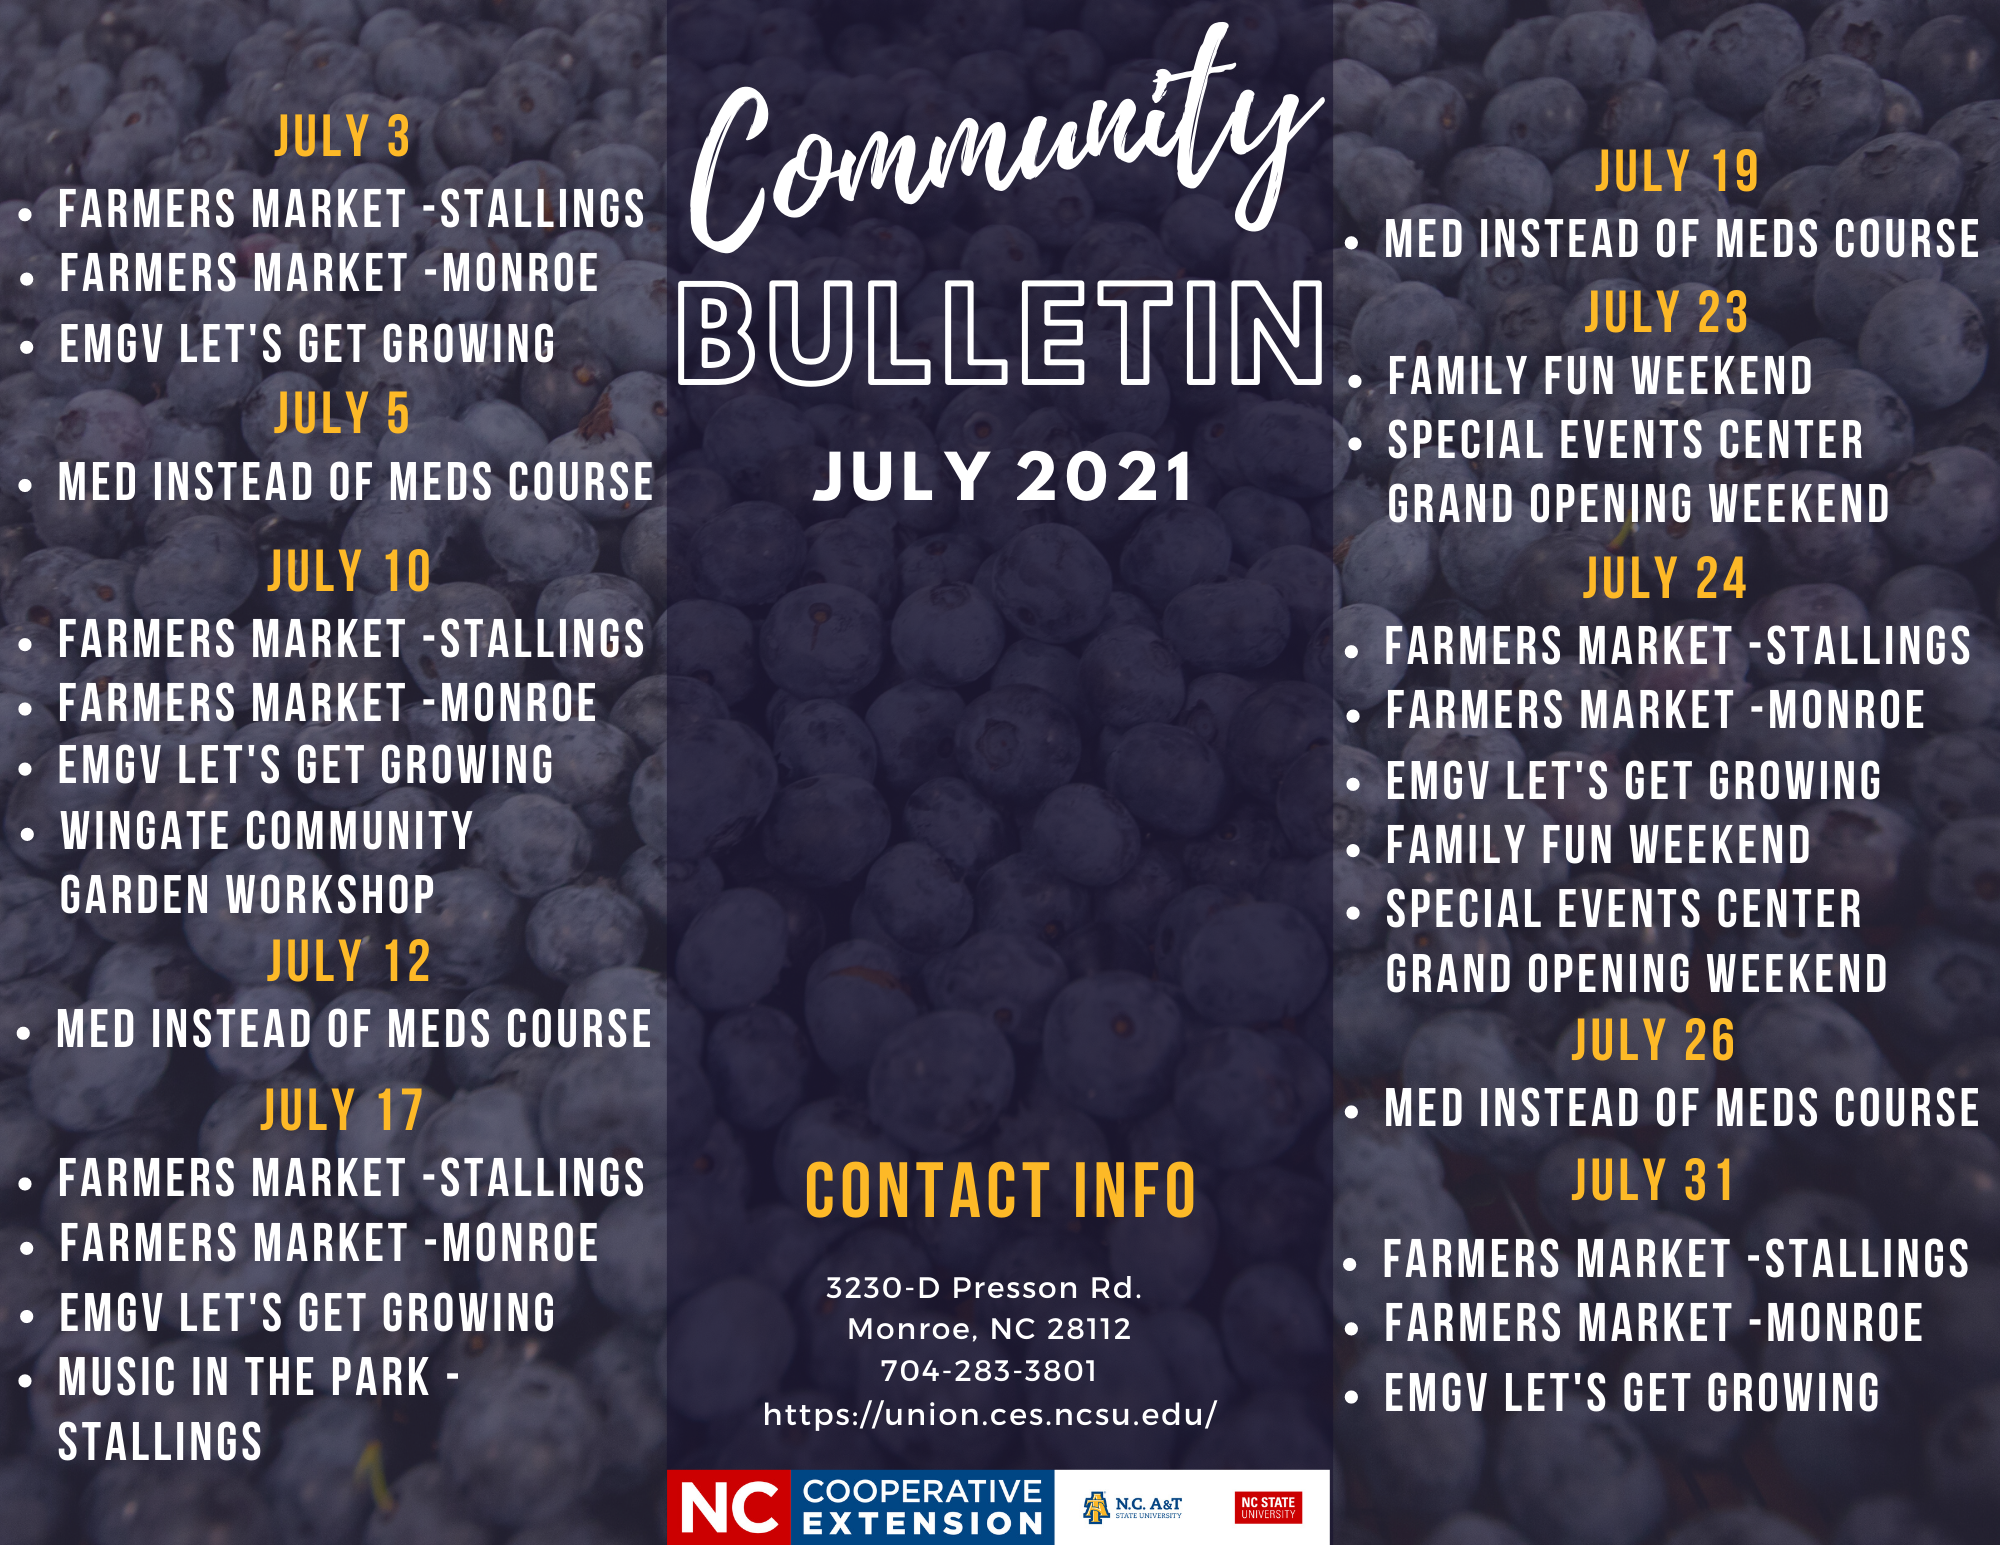 Bulletin with Events for the month of July